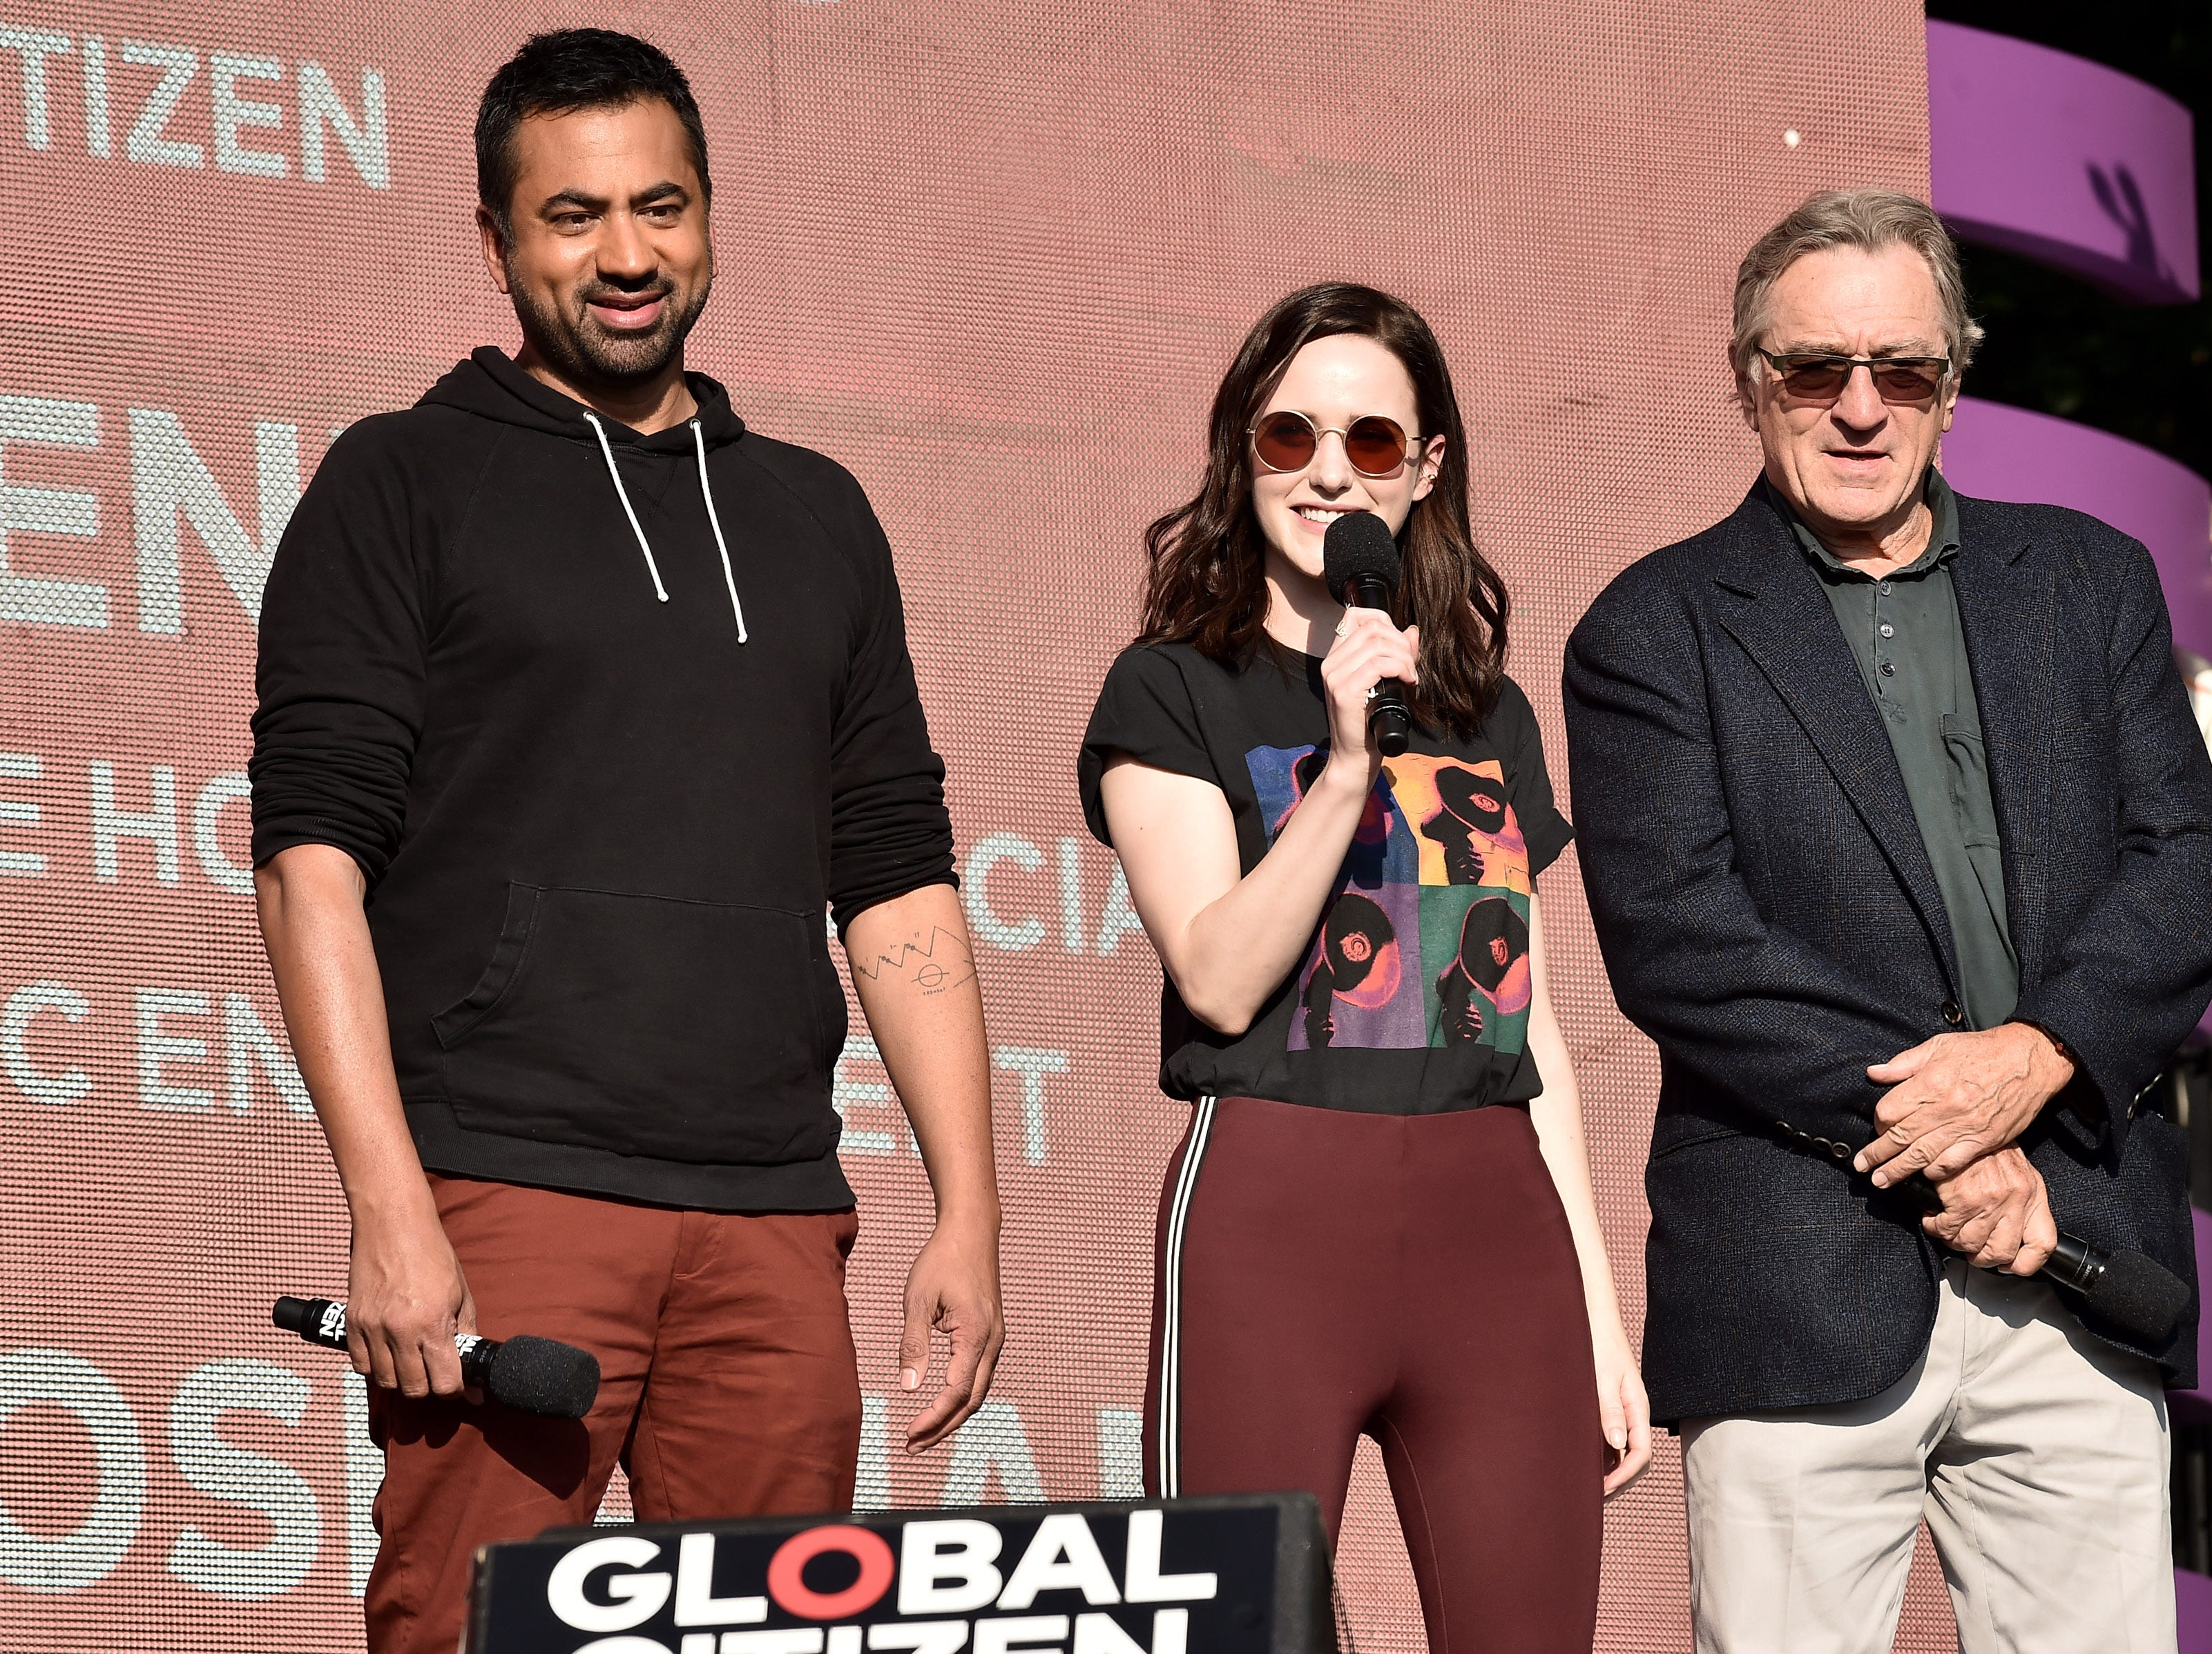 NEW YORK, NY - SEPTEMBER 29:  Former Associate Director White House Office of Public Liaison Kal Penn, actress Rachel Brosnahan and actor Robert De Niro speak onstage during the 2018 Global Citizen Concert at Central Park, Great Lawn on September 29, 2018 in New York City.  (Photo by Steven Ferdman/WireImage) ORG XMIT: 775224758 ORIG FILE ID: 1043278594